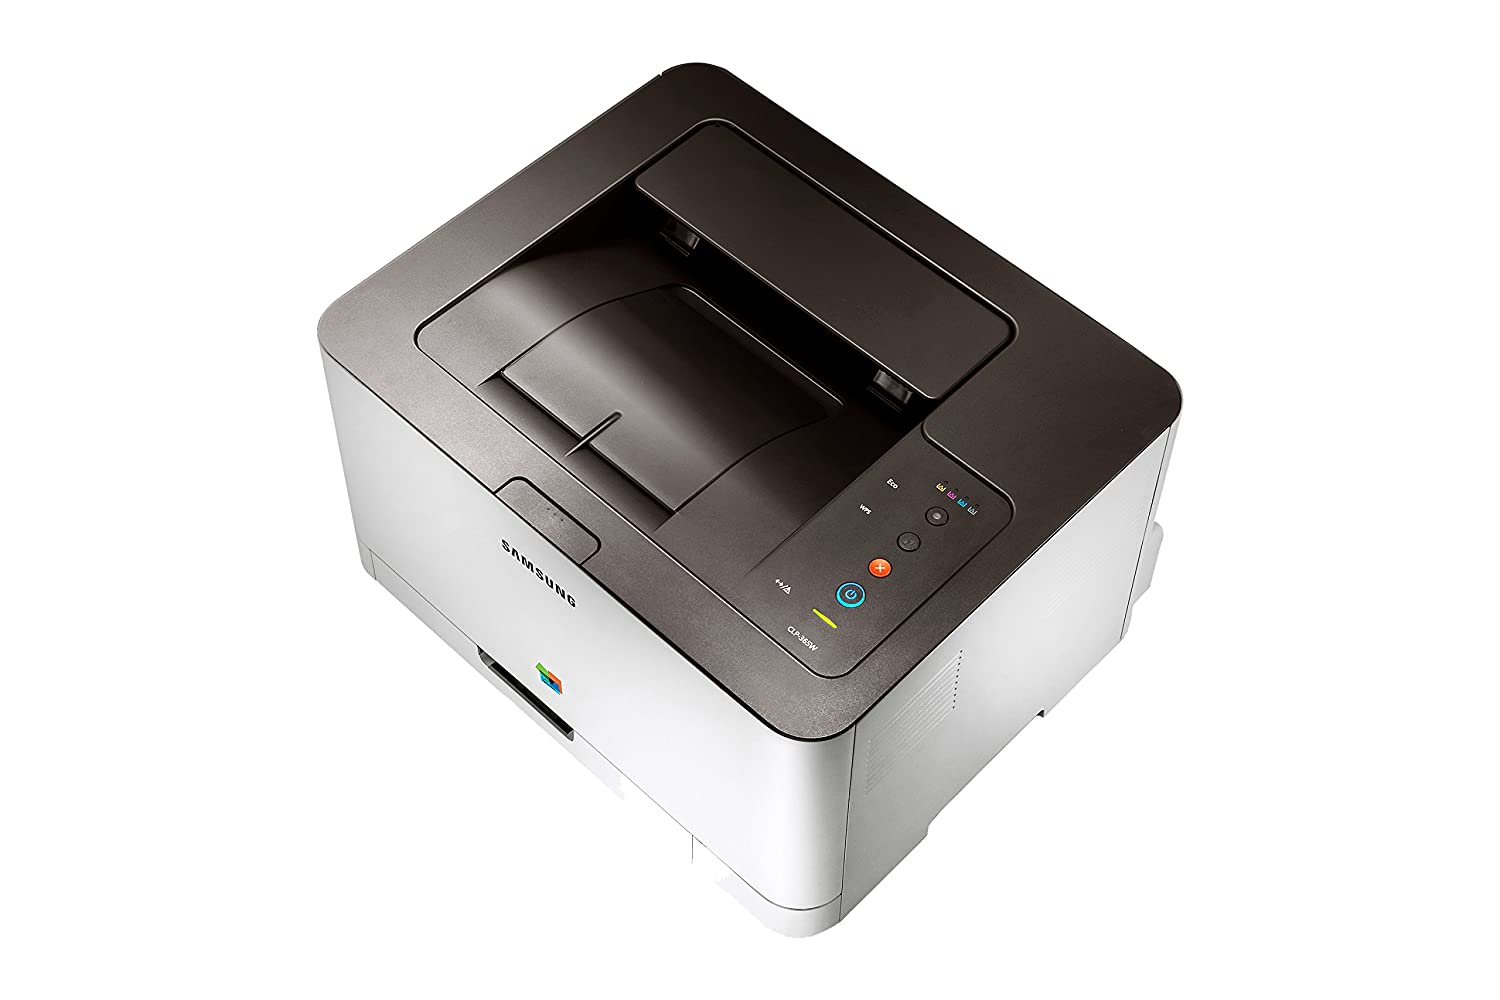 Amazon.com: Samsung Clp-365W Wireless Colour Laser Printer ...